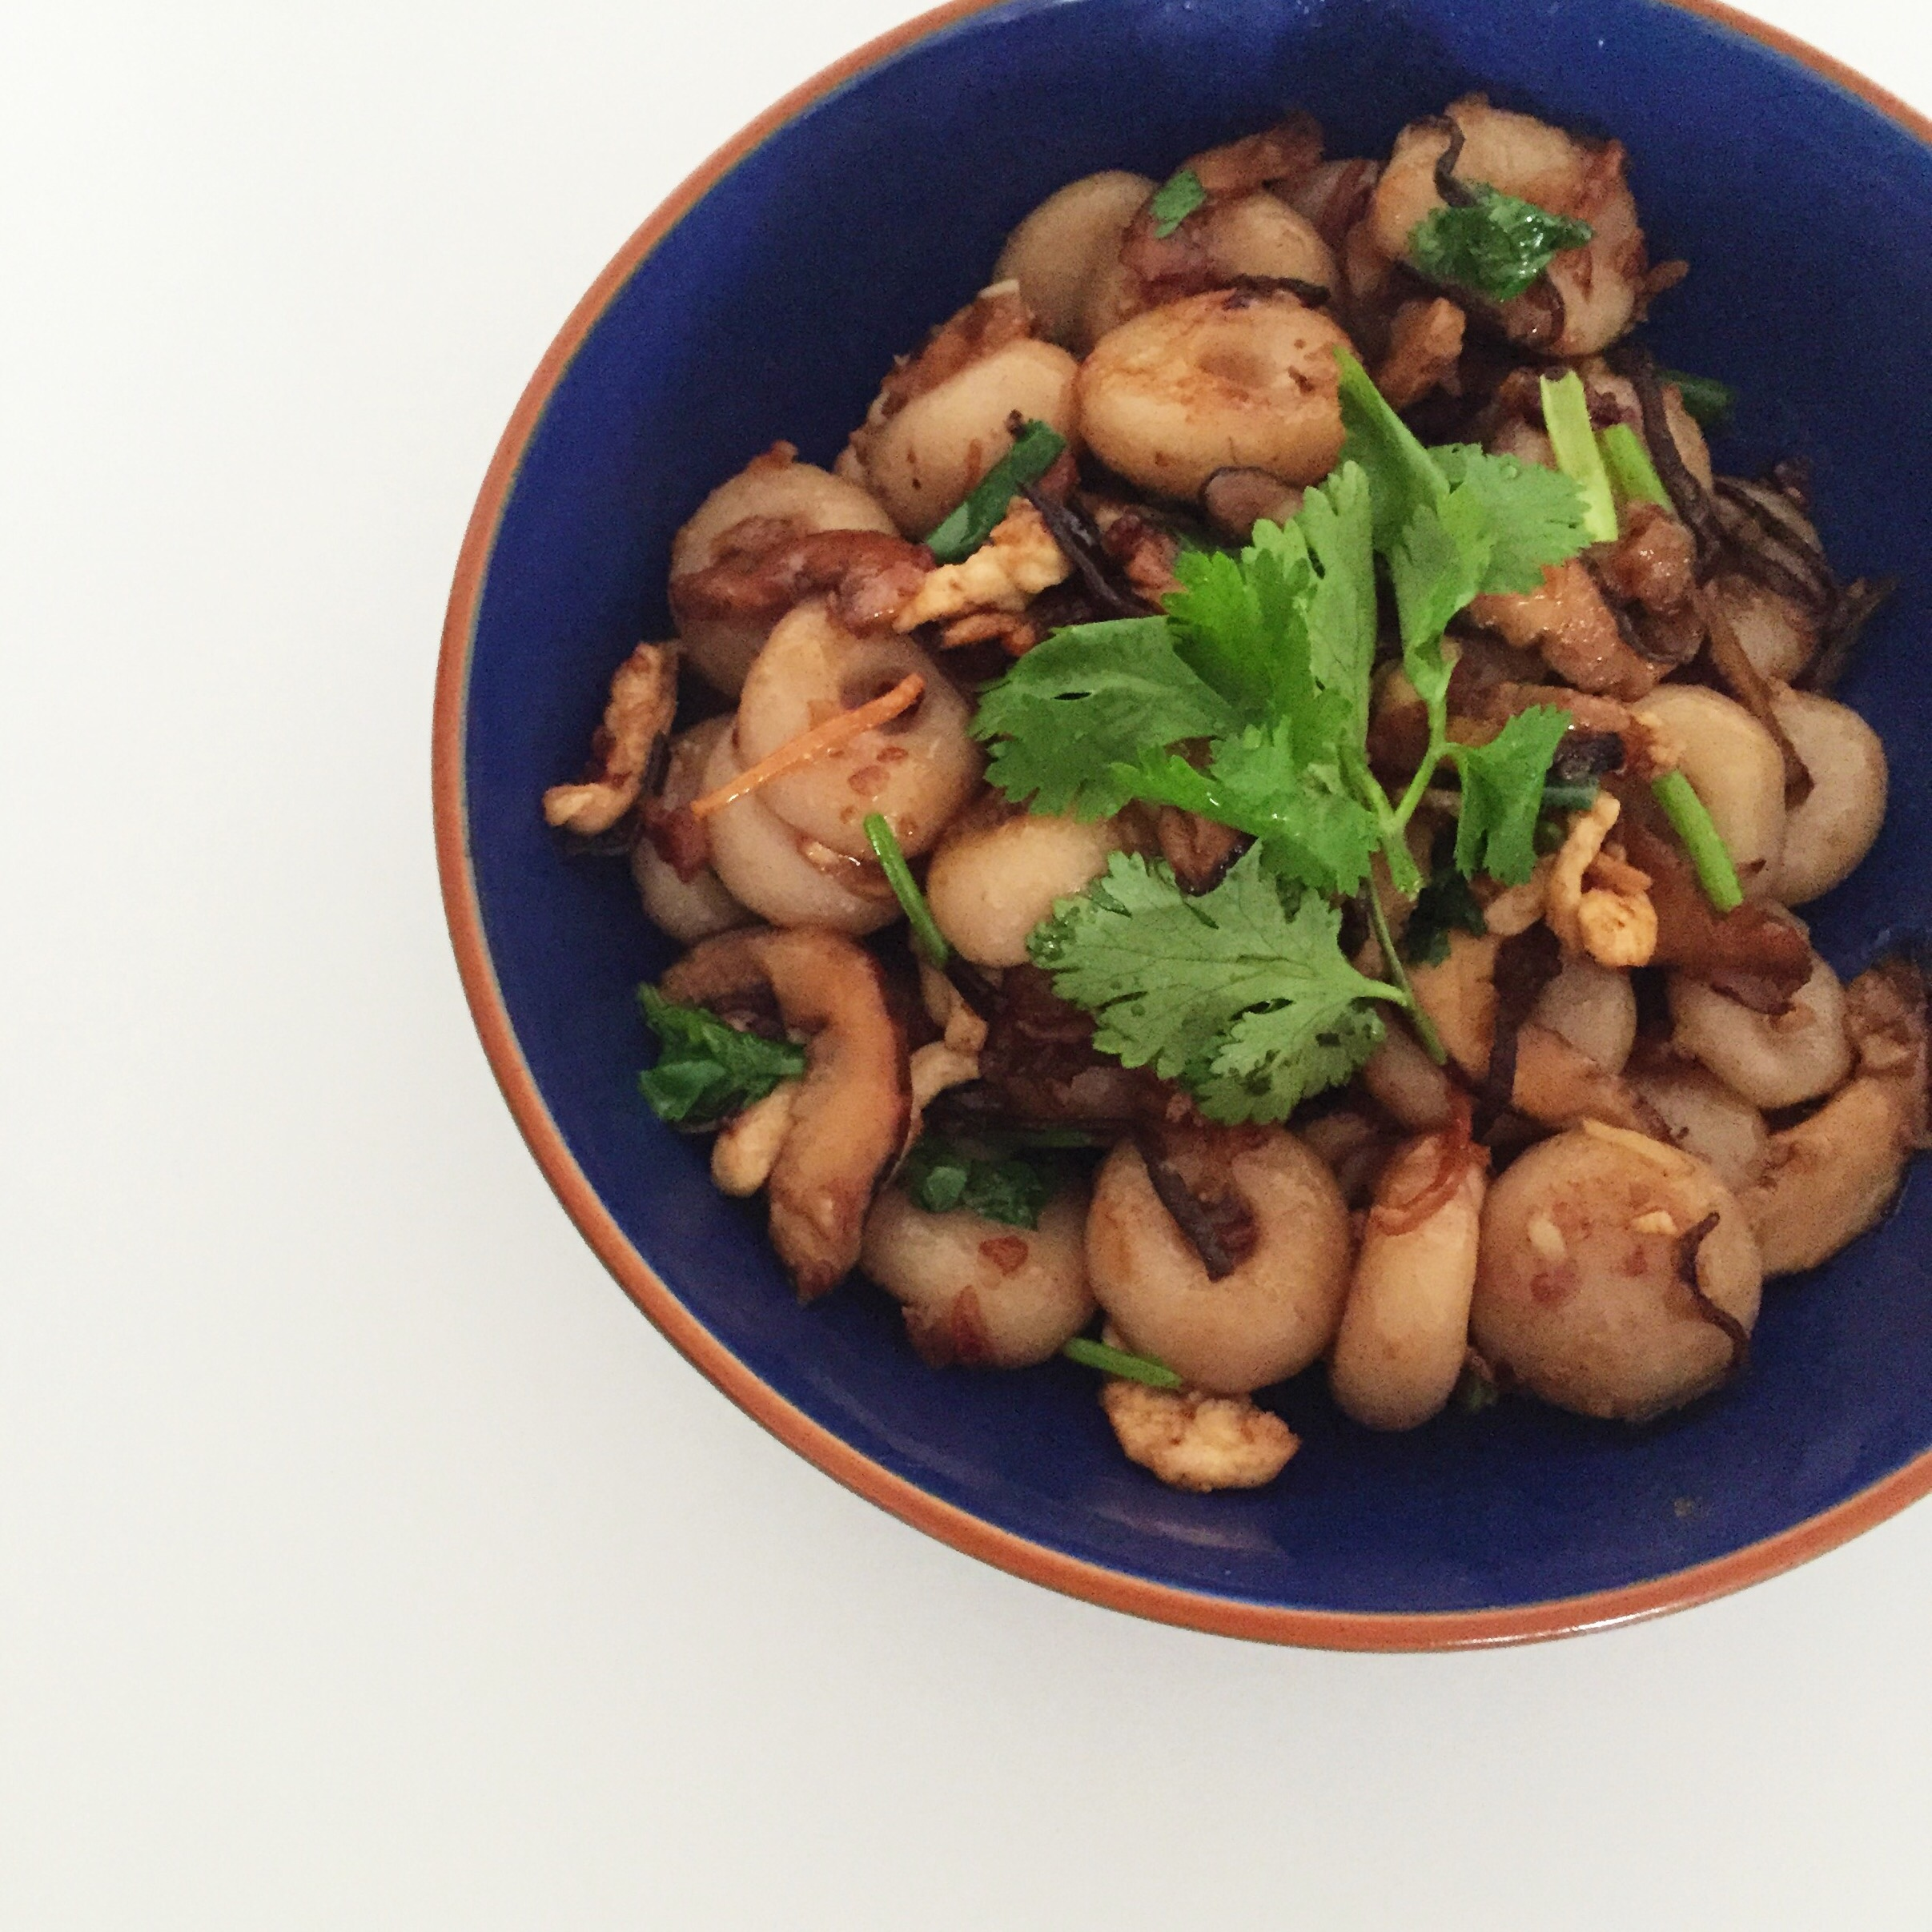 Atypical hakka dish that is believed to be very difficult to make.